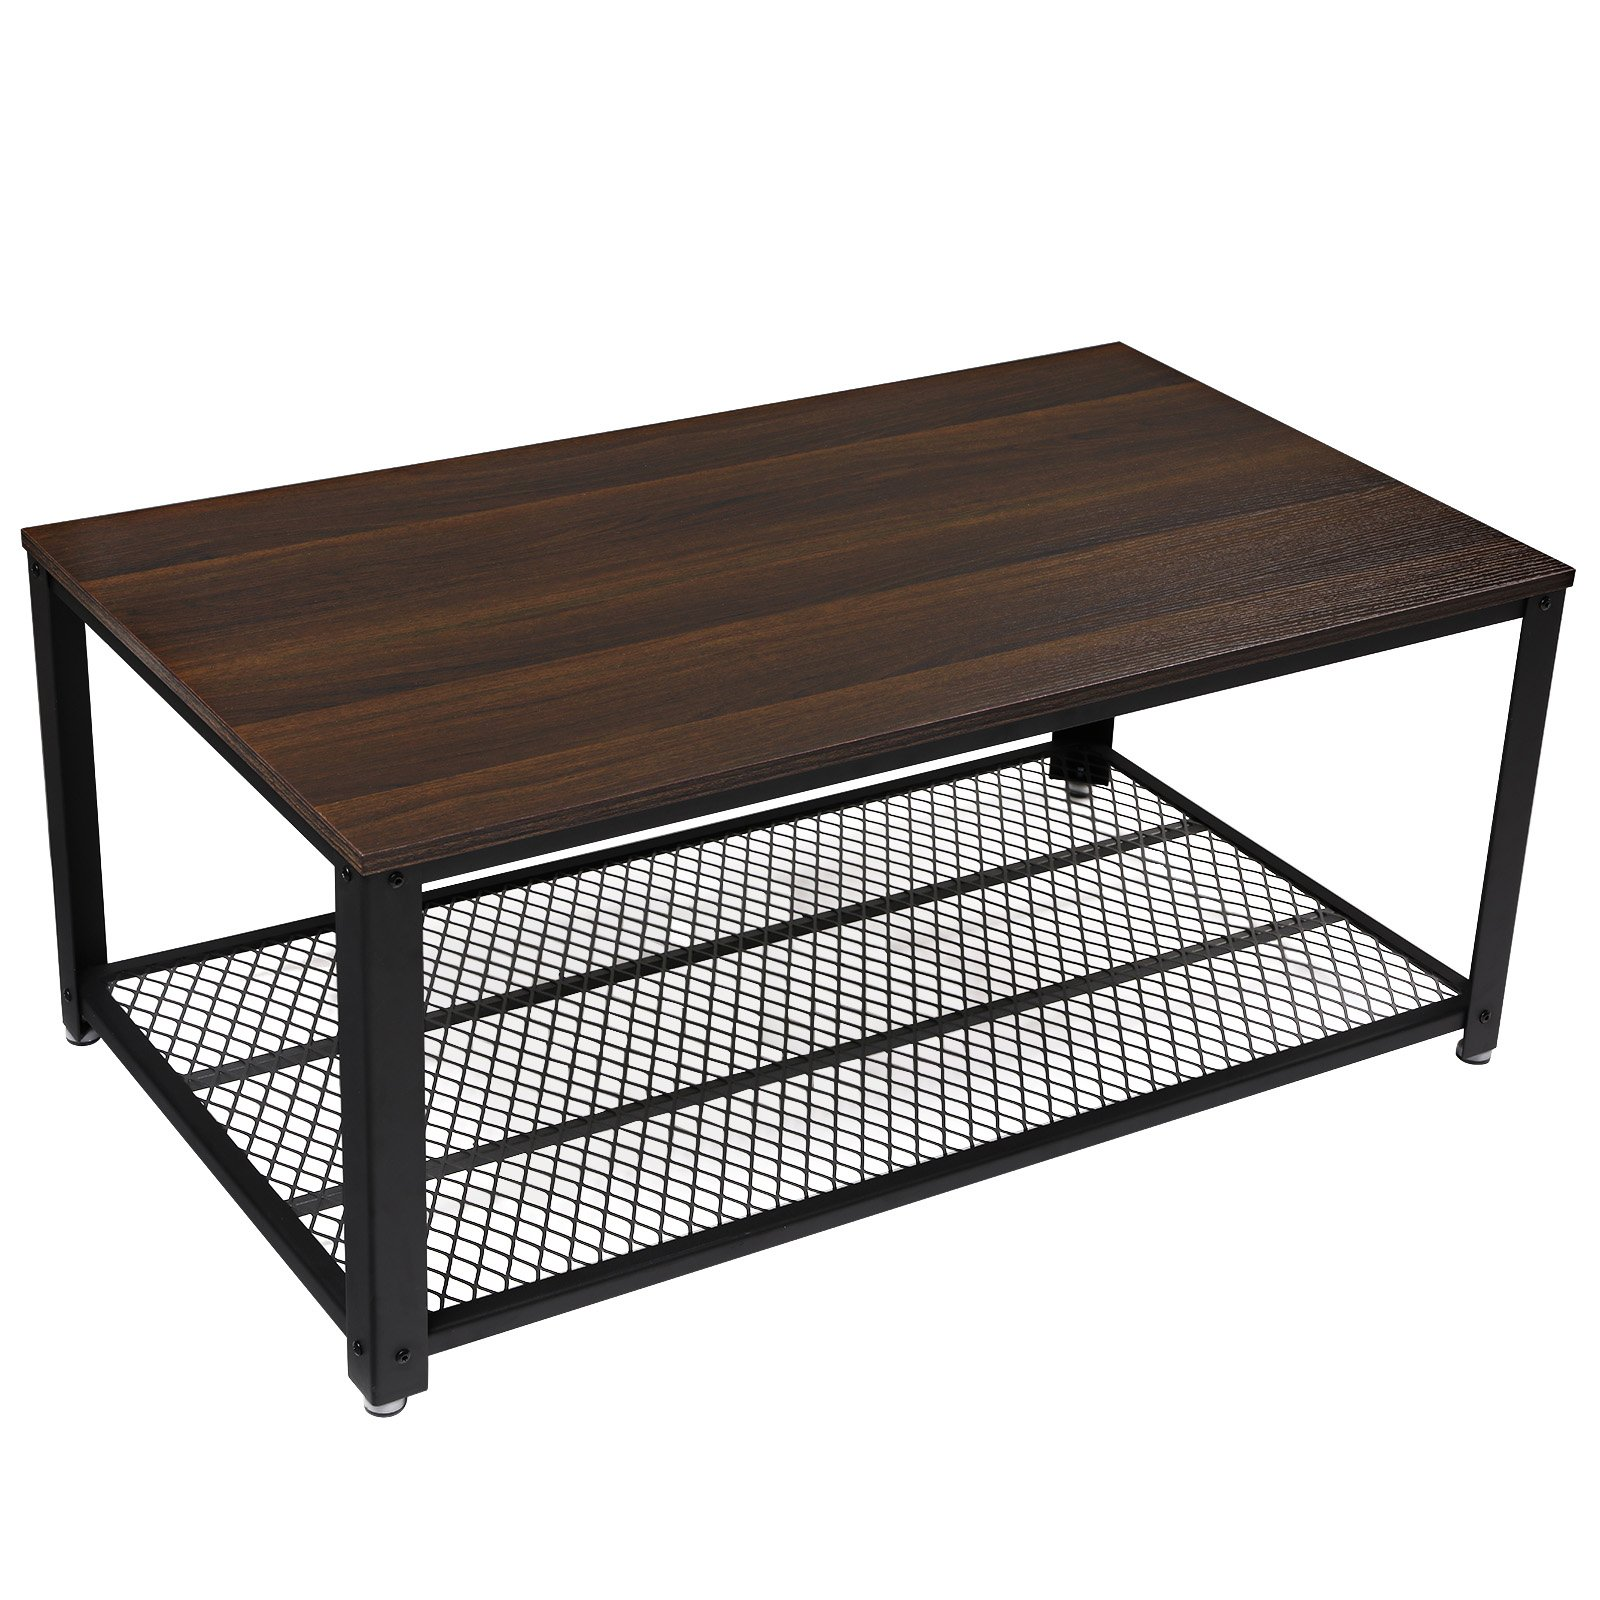 SONGMICS Coffee Table, Cocktail Table with Storage Shelf for Living Room, Easy Assembly, Dark Walnut ULCT61K